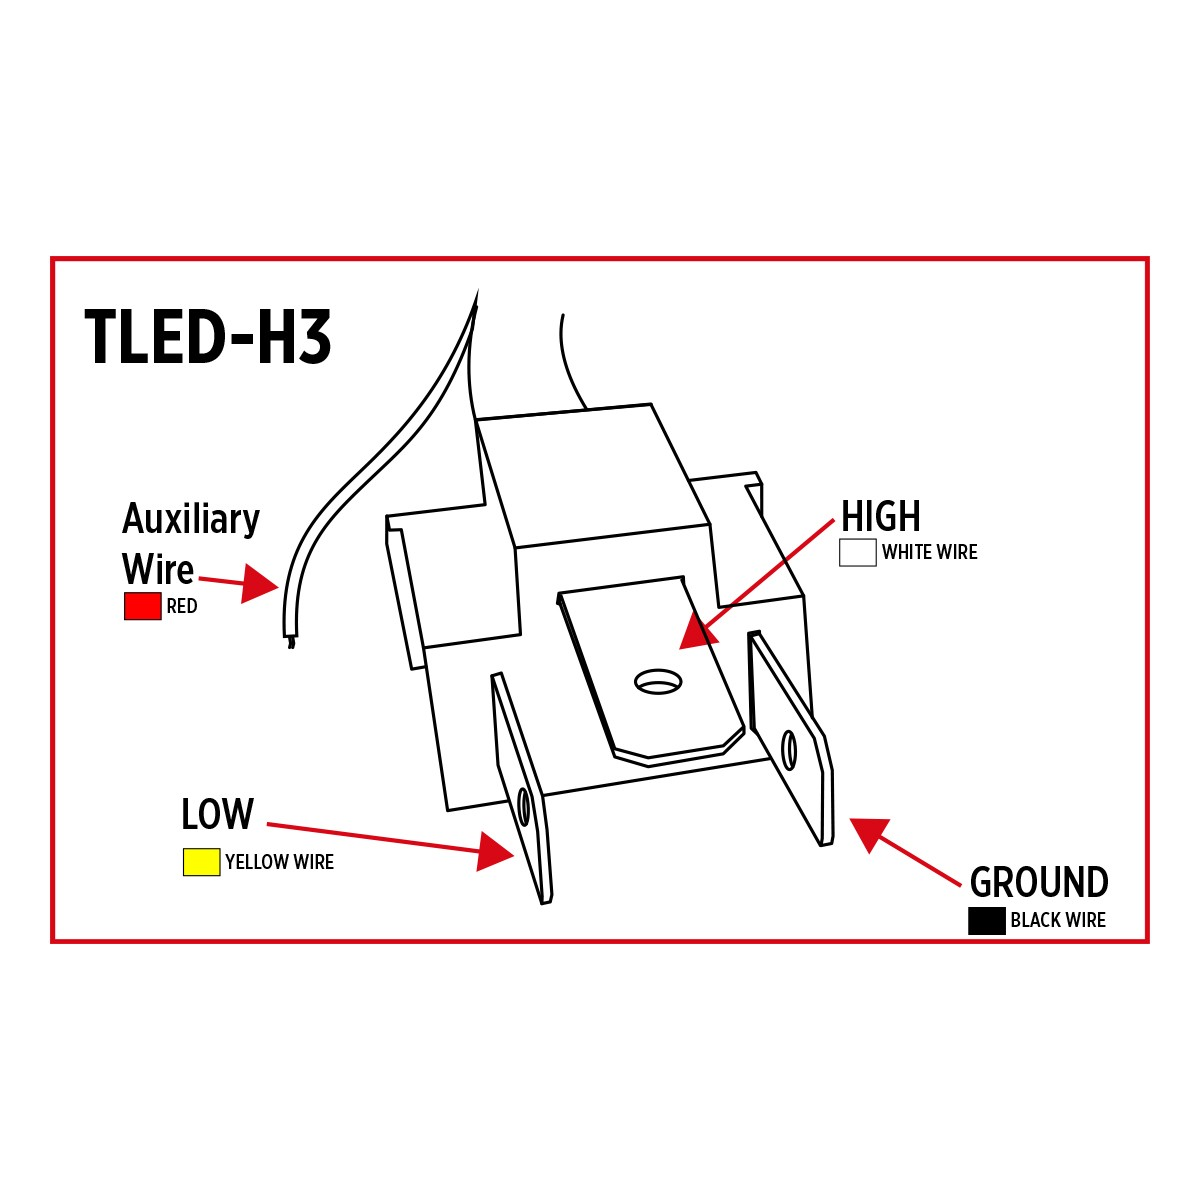 518023 Need Protect New Ceiling Exhaust Fan Bathroom Gfci likewise 213147 furthermore Gfci Circuit Breaker Diagram moreover Diagram Of Electrical Stove Outlet moreover 207988 Electrical Nightmare Elm Street. on wiring multiple outlets